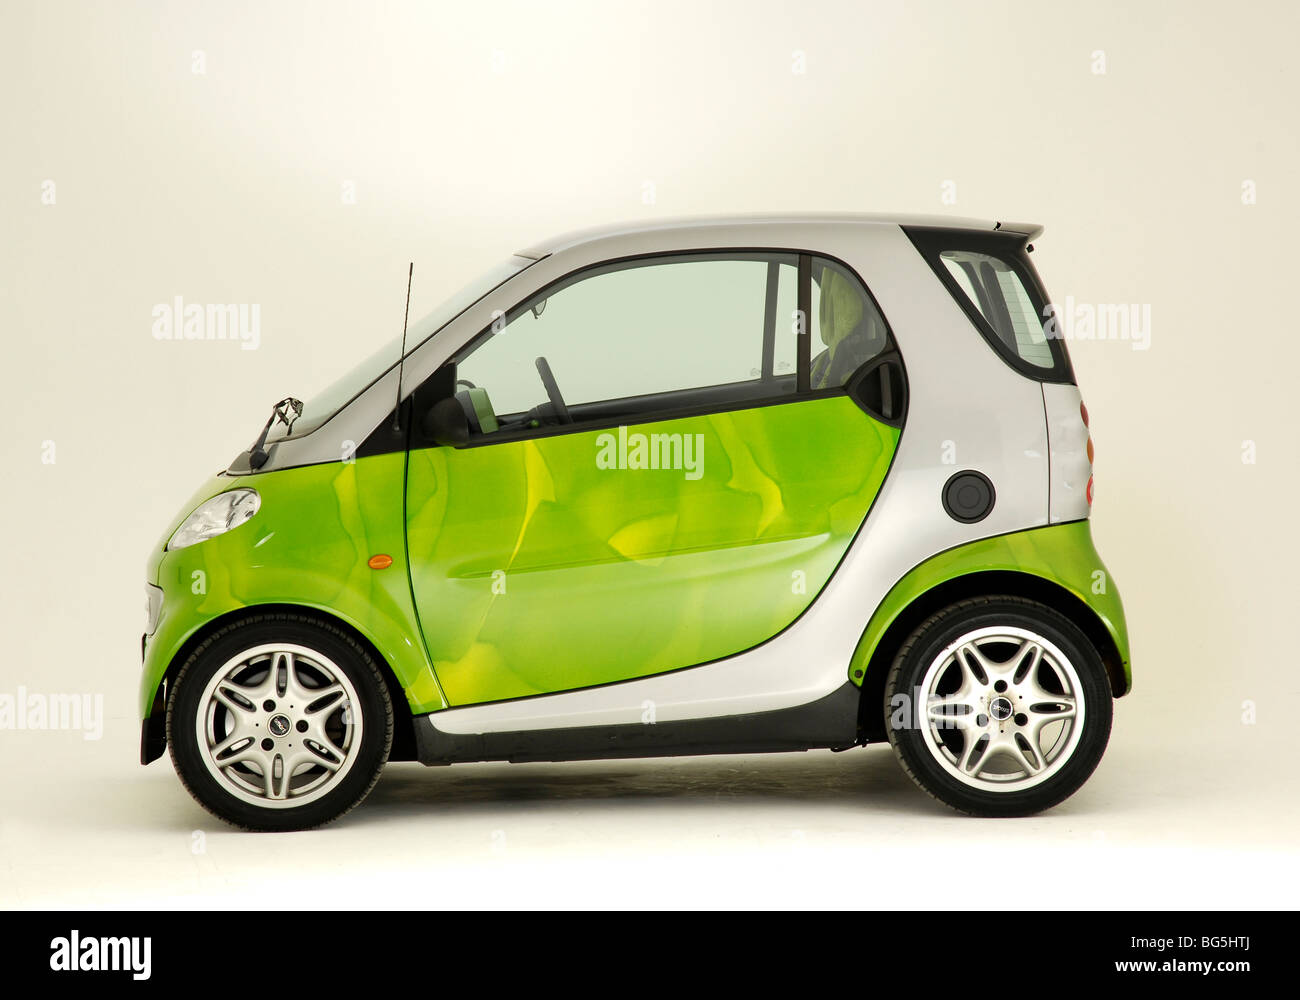 2001 smart Auto mk1 Stockbild